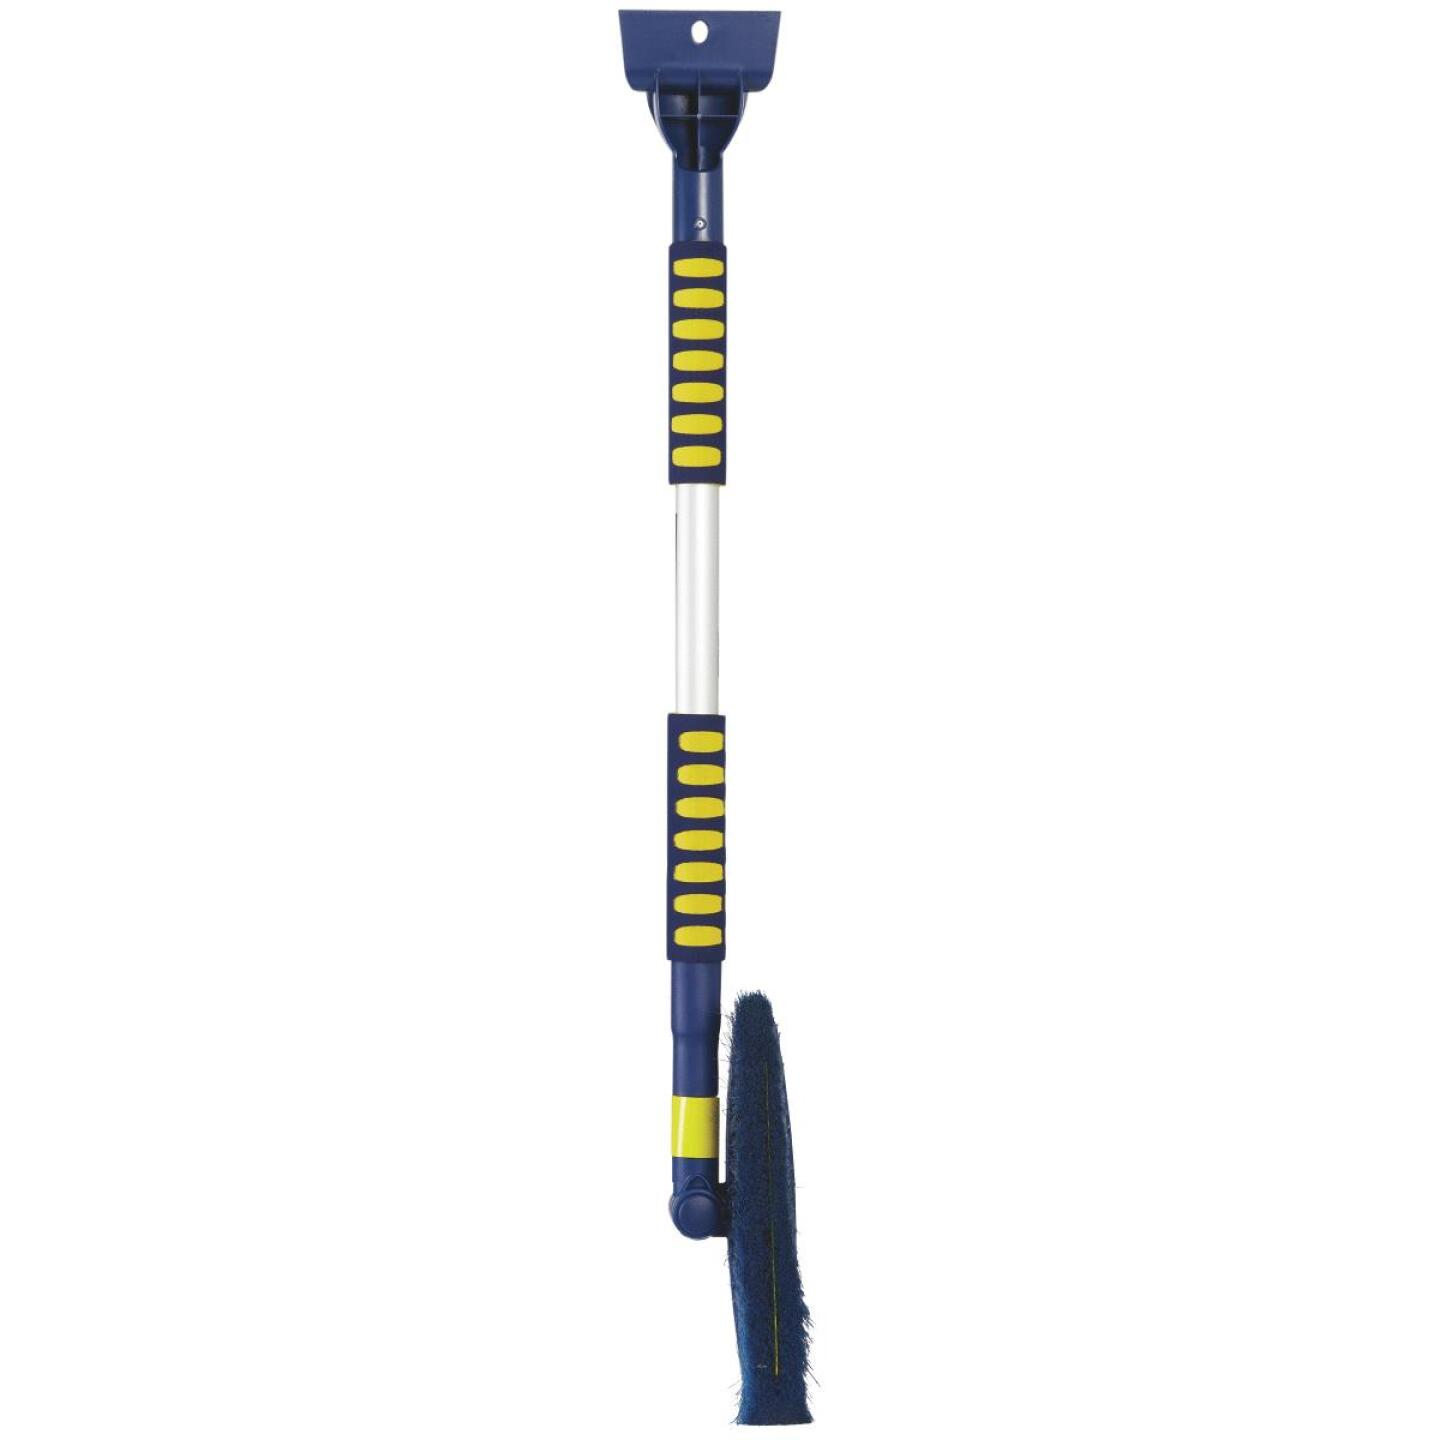 Michelin Avalanche 63 In. Steel Multi-Functional Telescopic Snowbrush and Ice Scraper Image 2